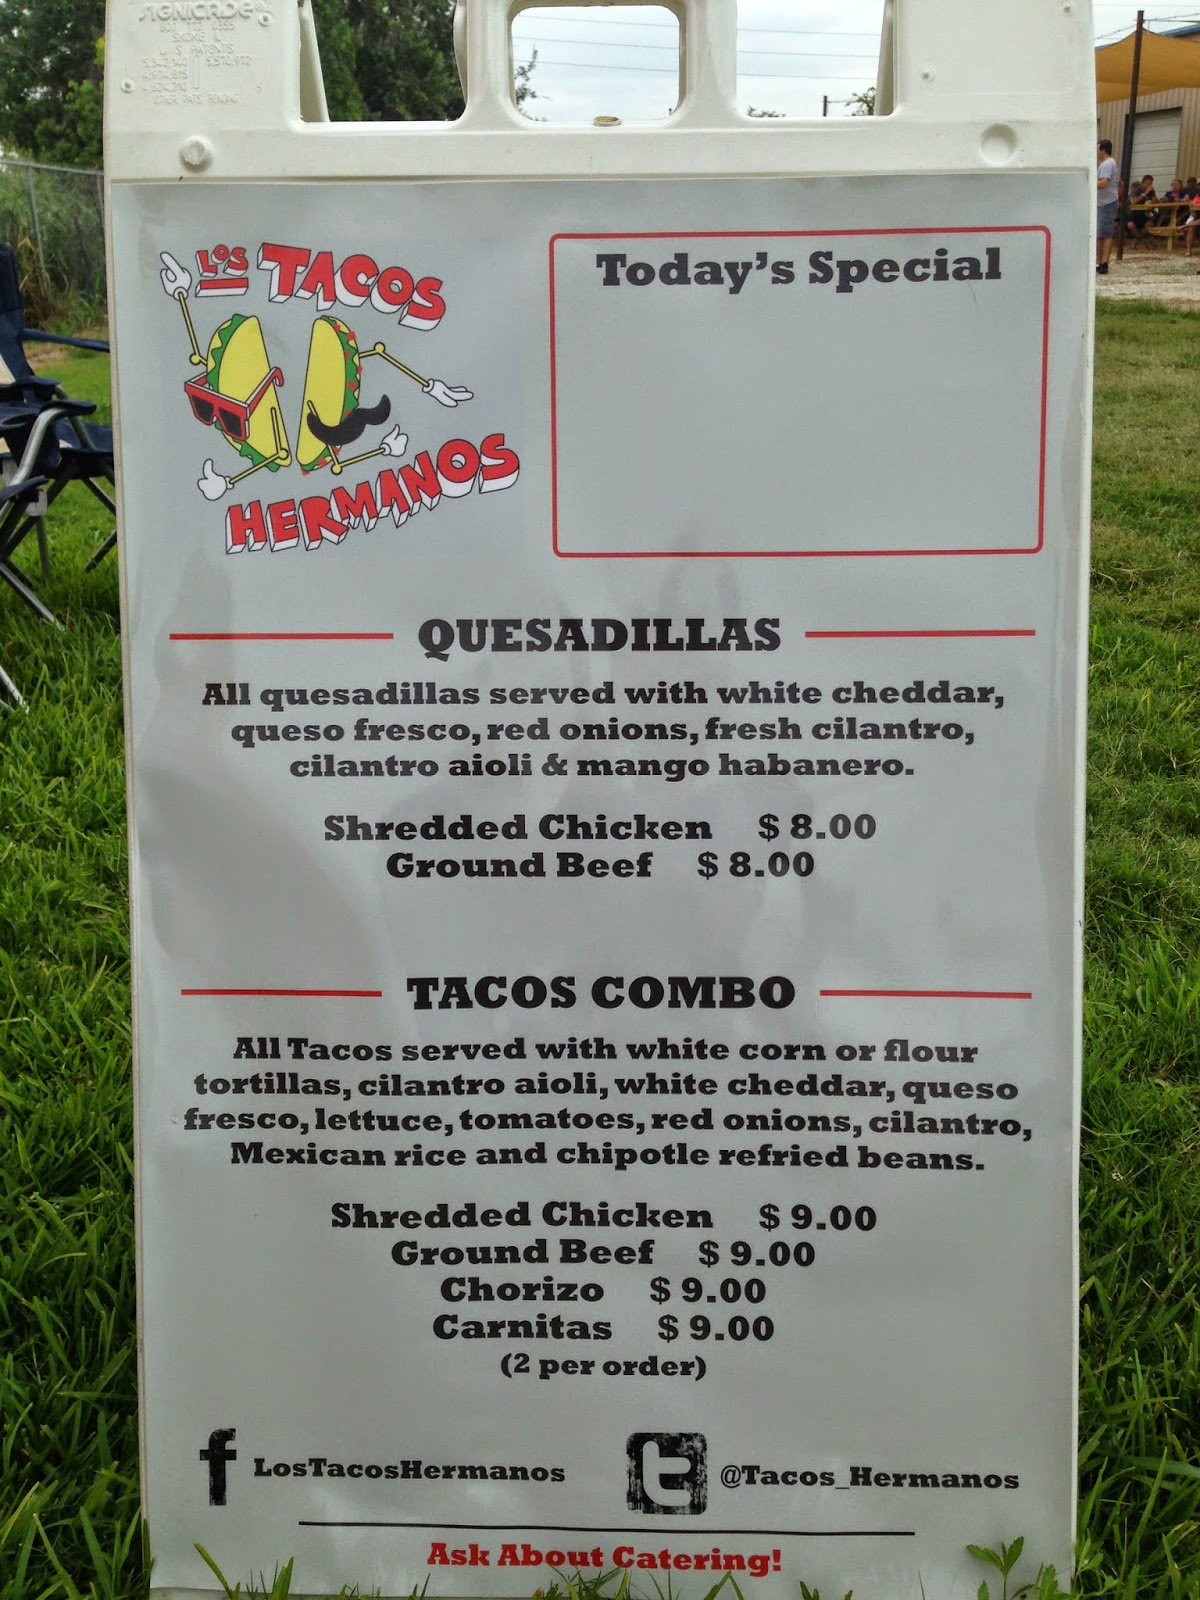 Los Tacos Hermanos Food Truck, Houston TX Menu